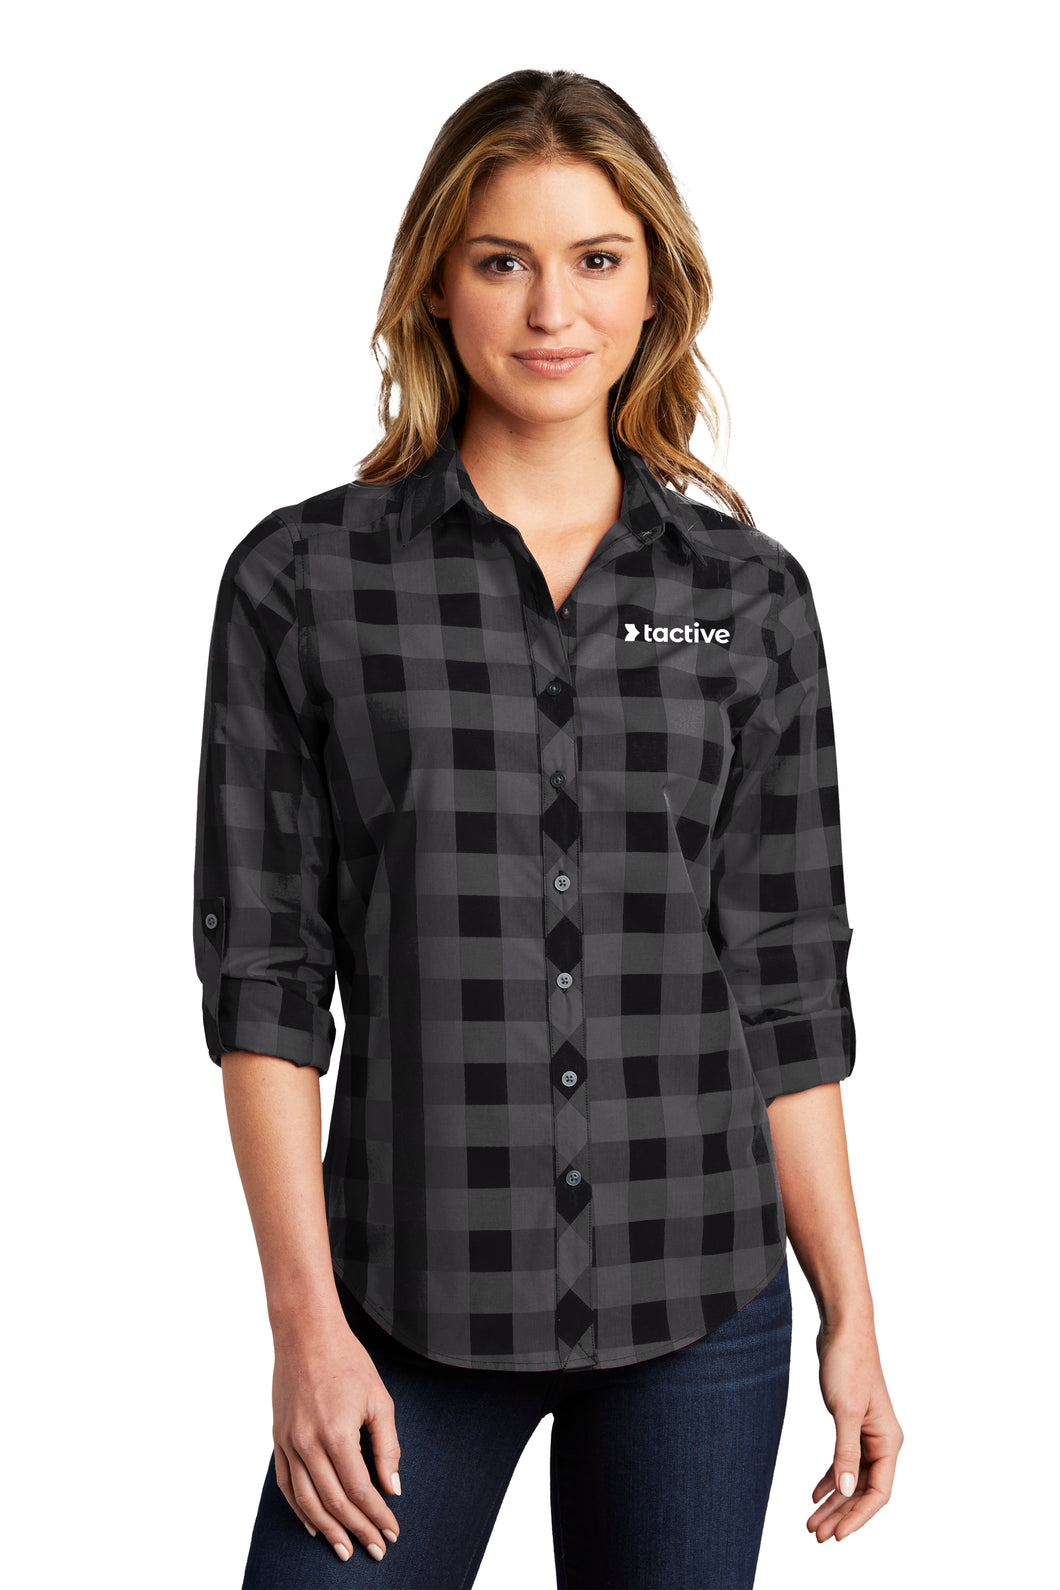 Tactive Ladies Everyday Plaid Shirt